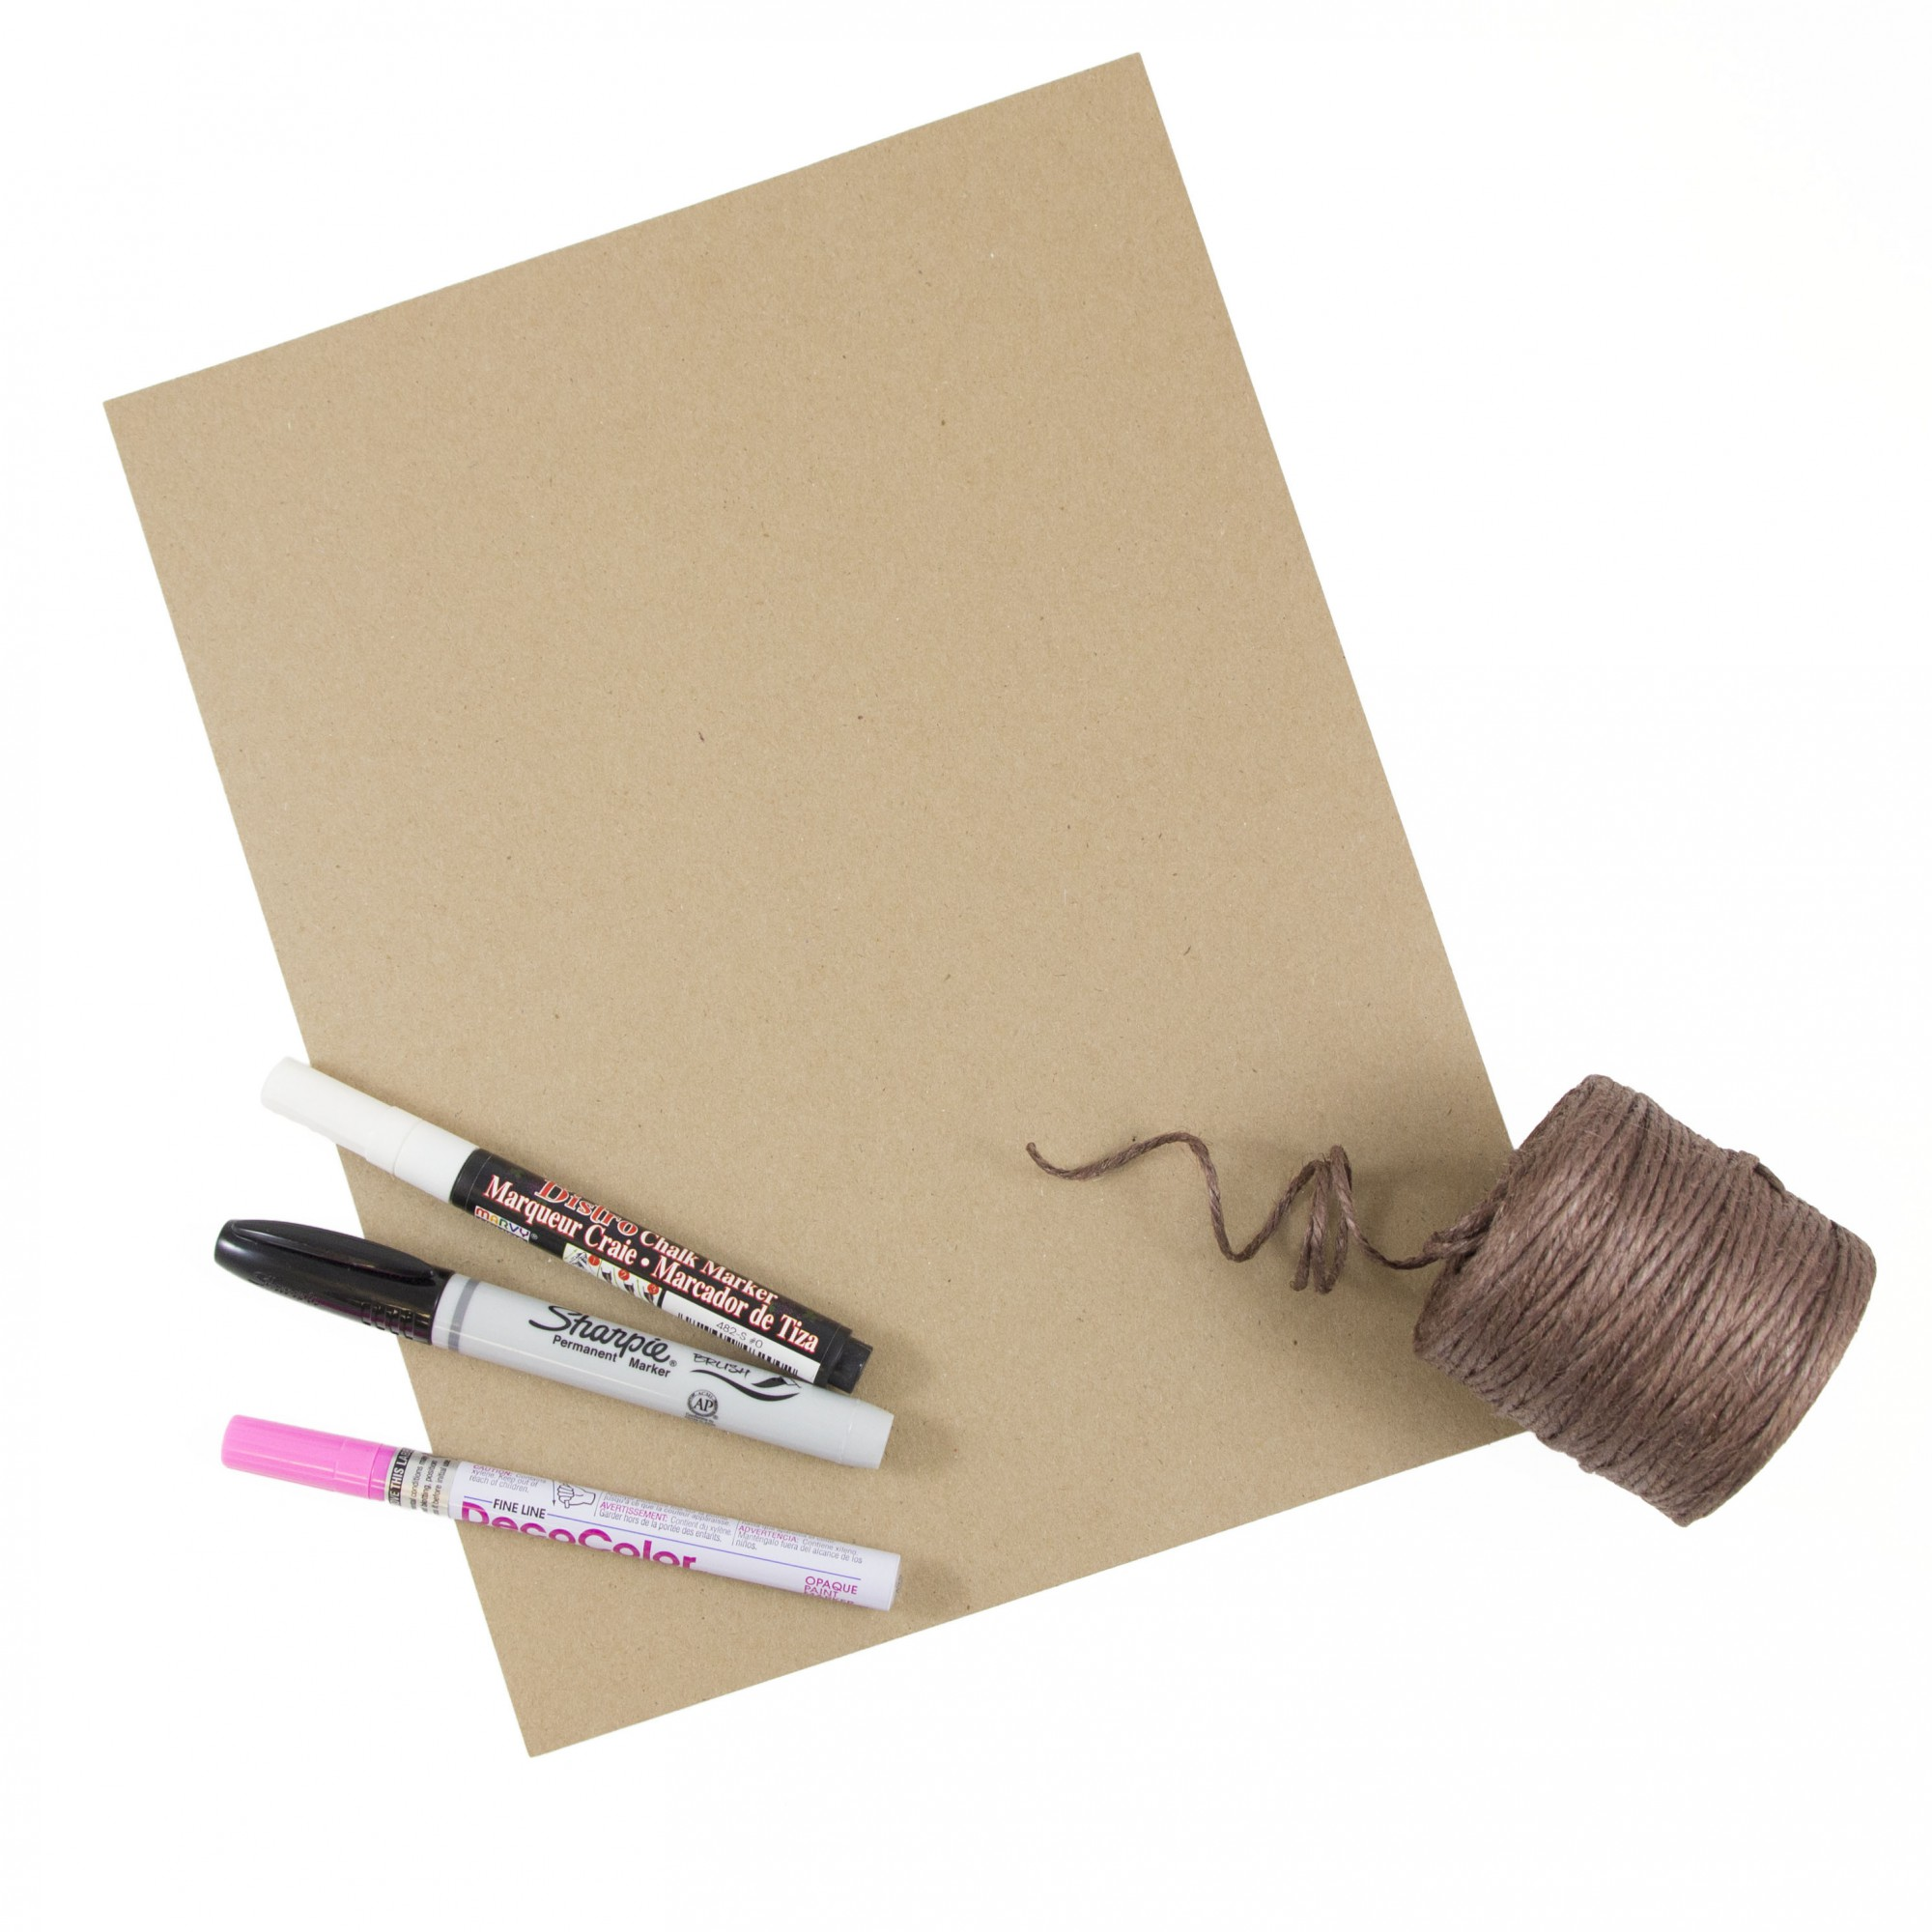 Materials for Last Minute DIY Halloween Costumes: brown kraft paper, twine, sharpie, and paint markers